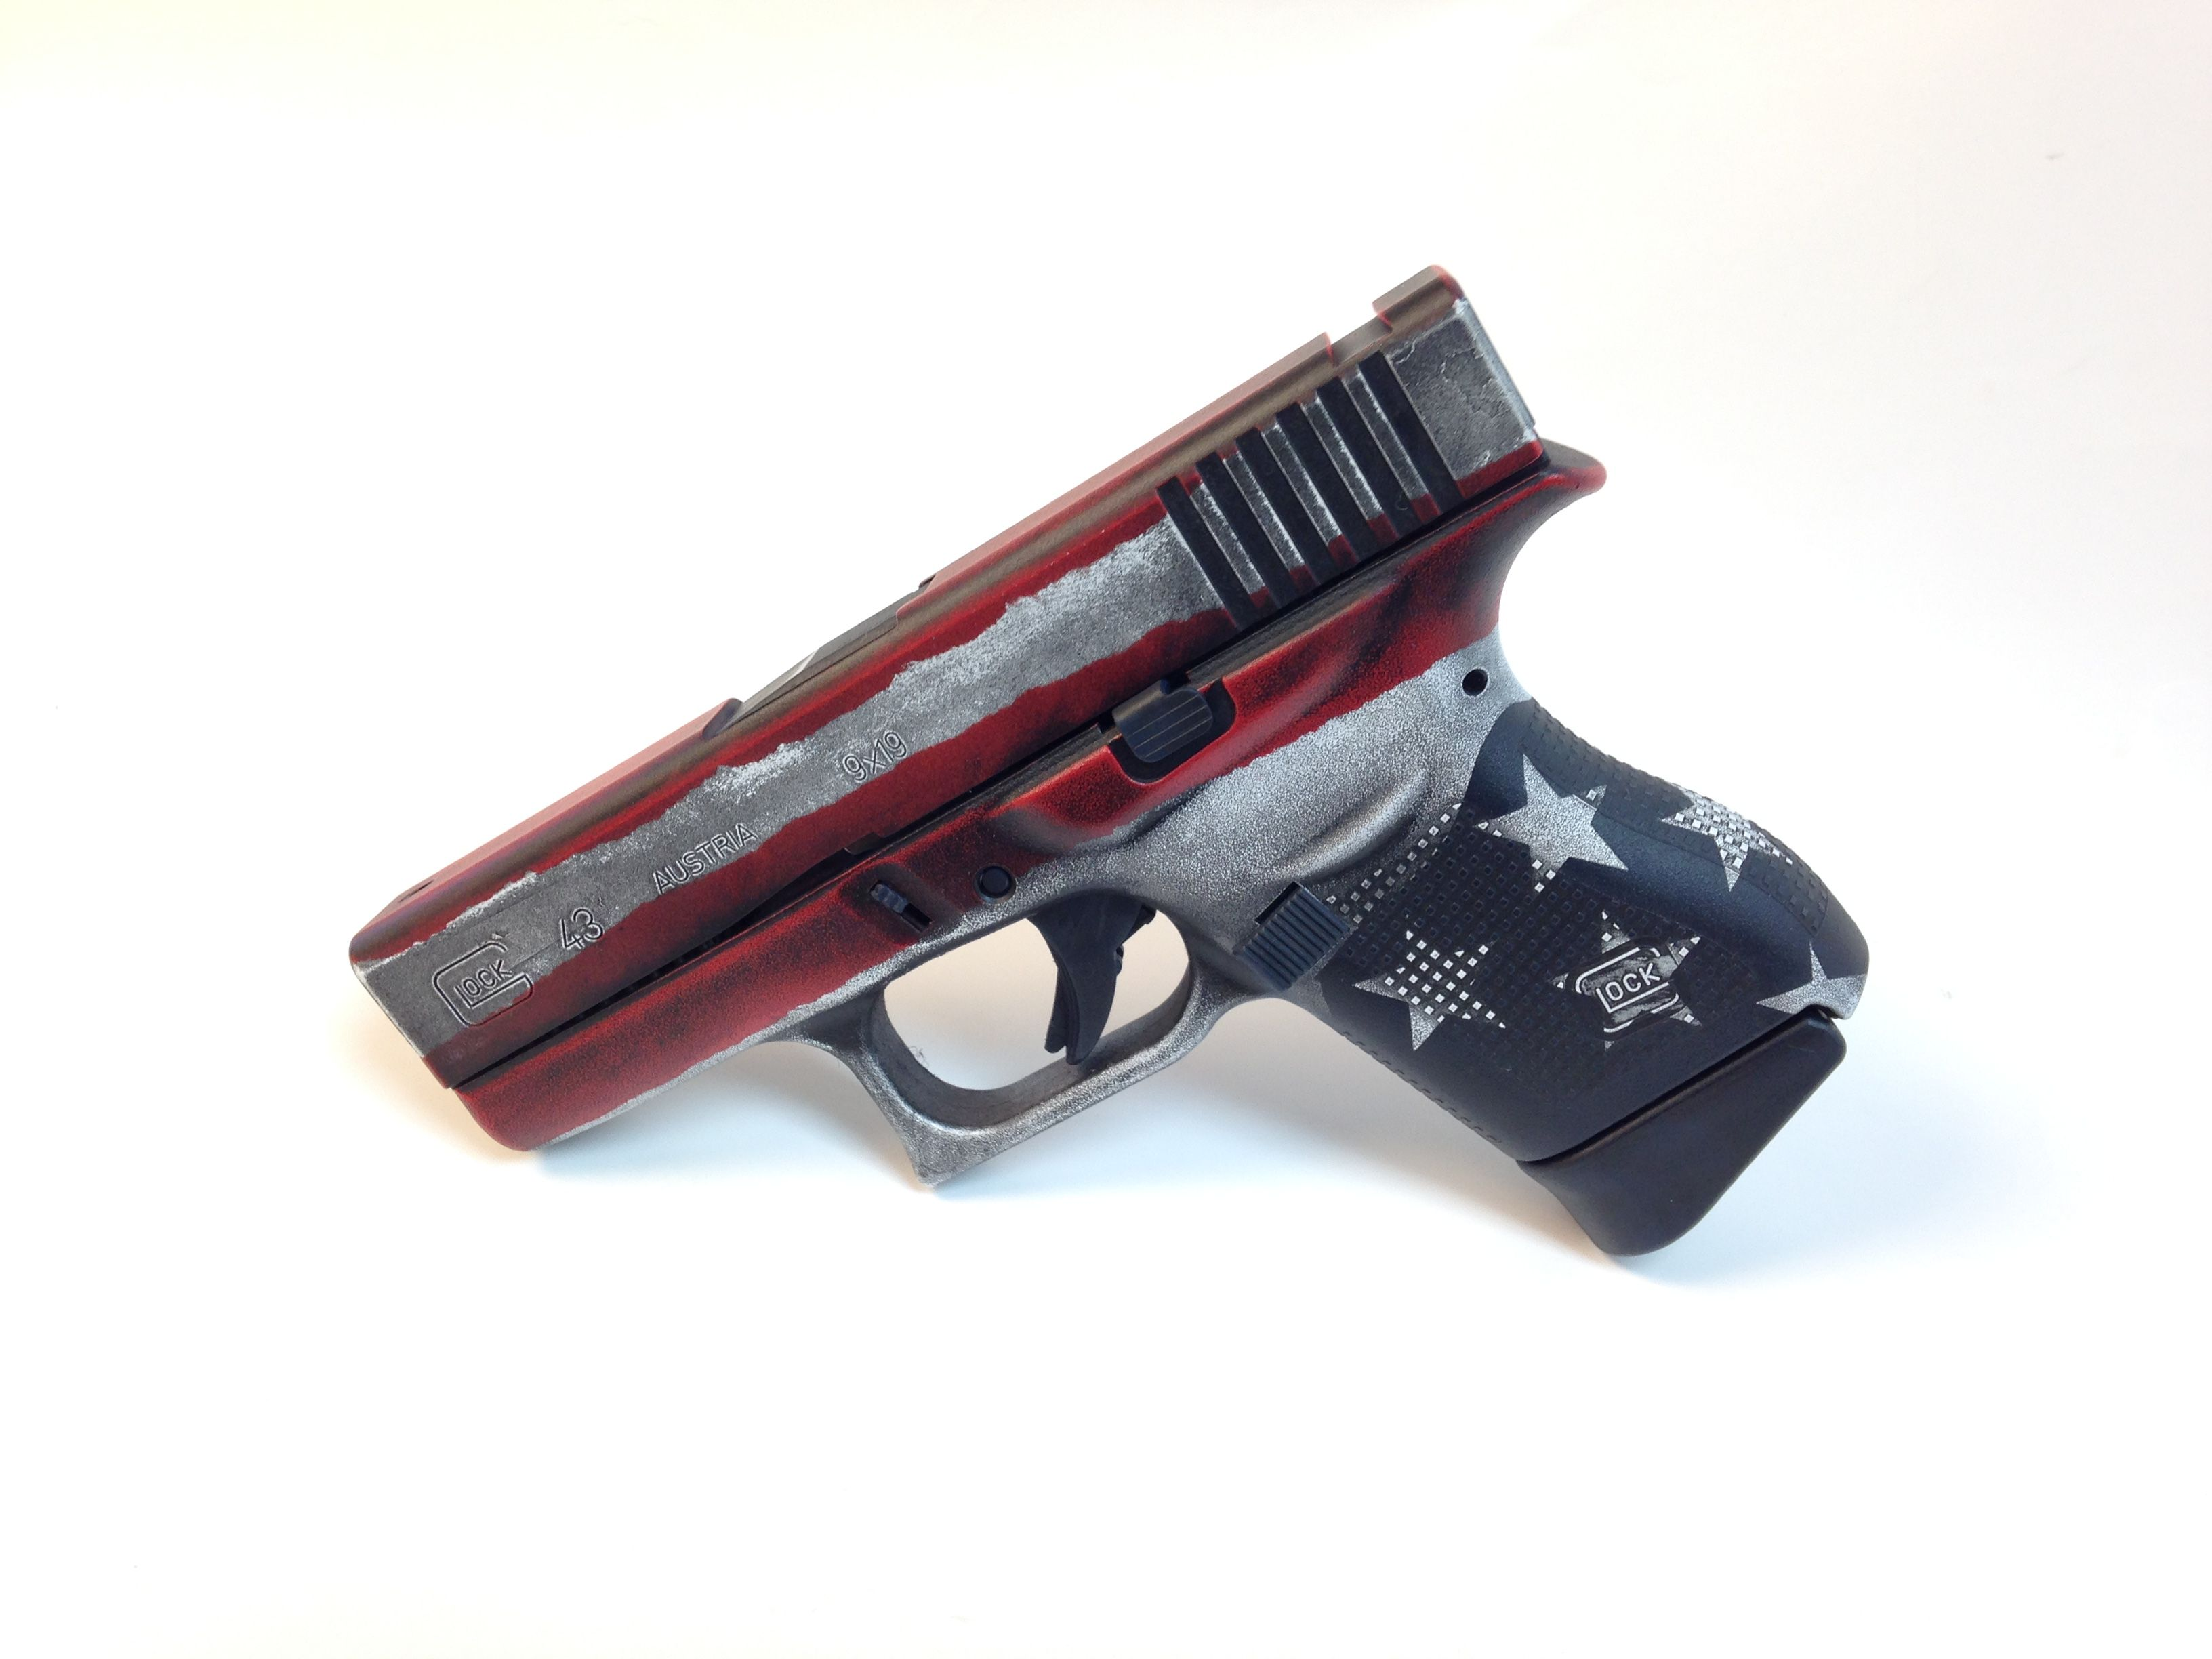 Pin On Guns With Color And Camo Bling Bling